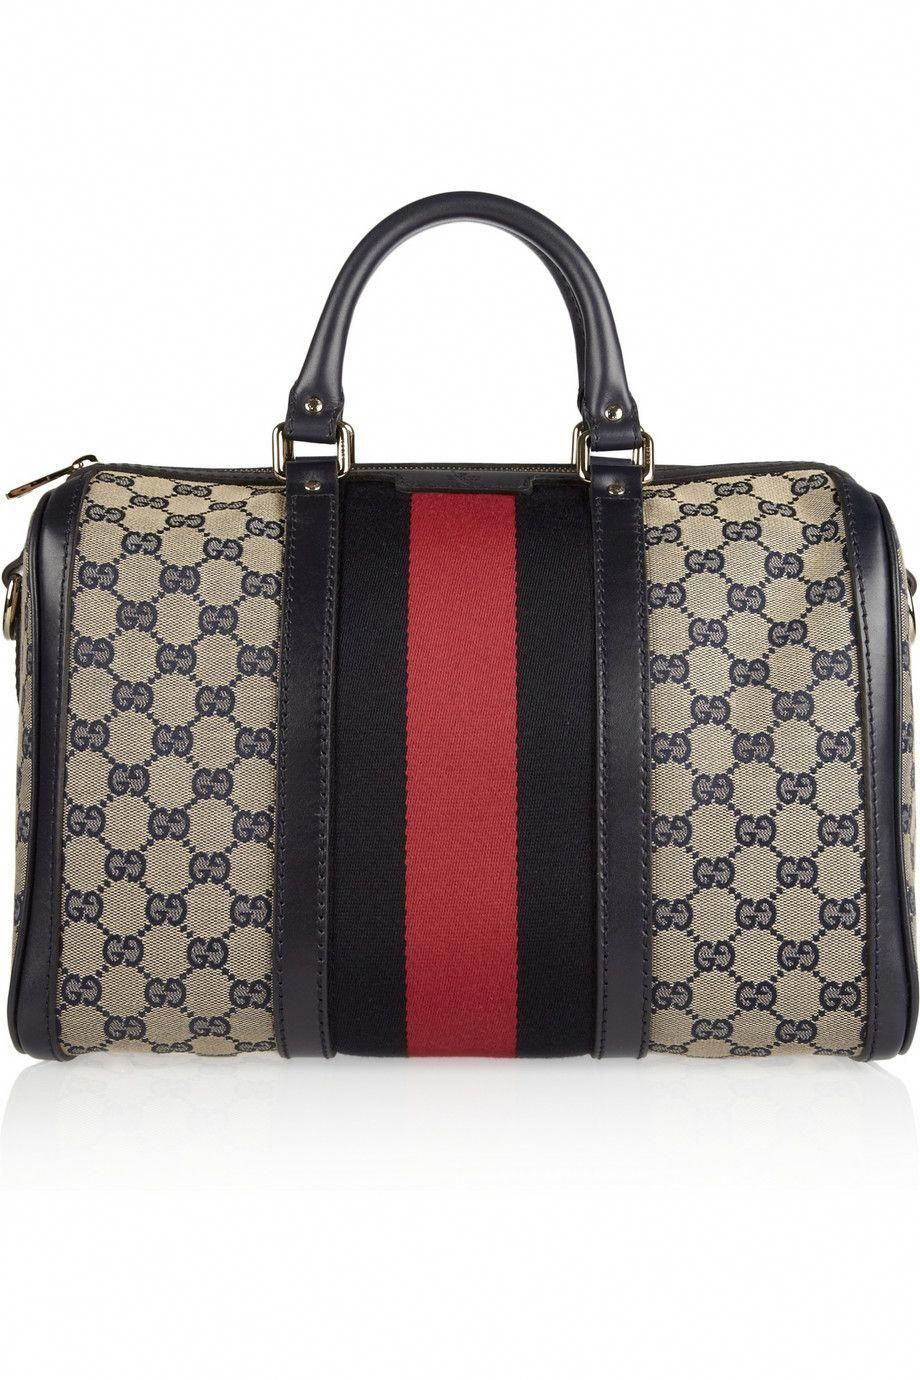 55e3f2a93807d9 Gucci vintage Web monogram canvas duffel bag. I want. #Guccihandbags ...